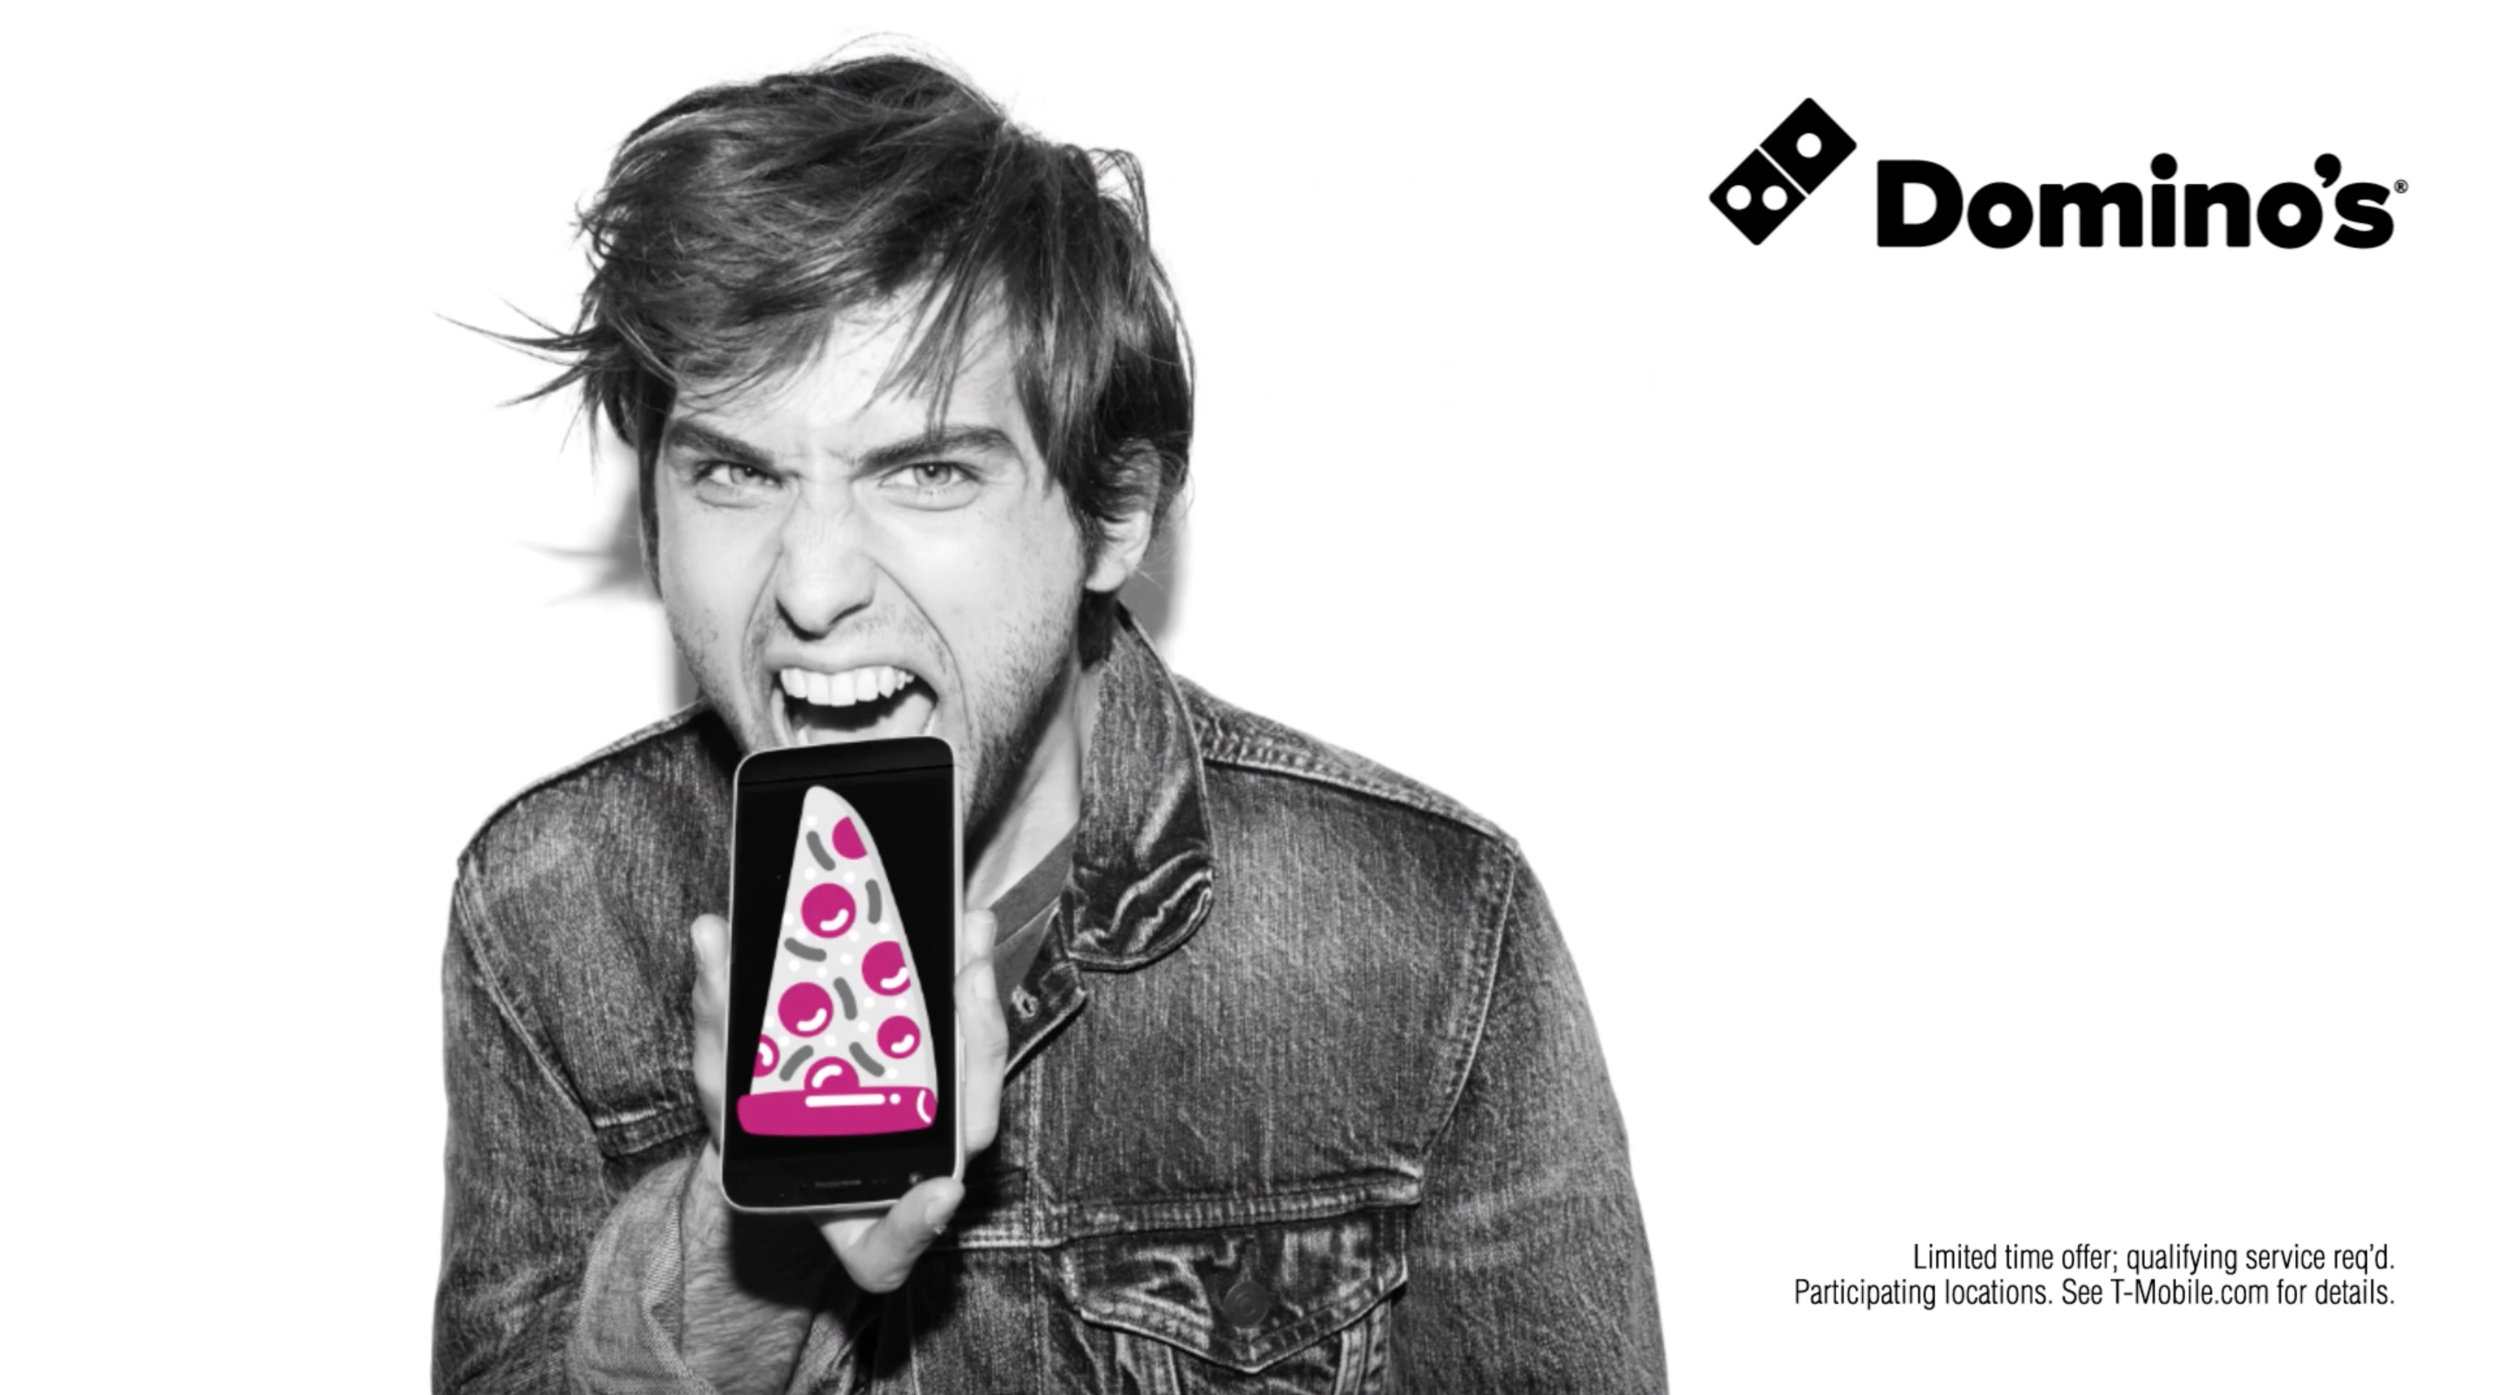 T-mobile_Tuesdays_CodyKussoy_05.png